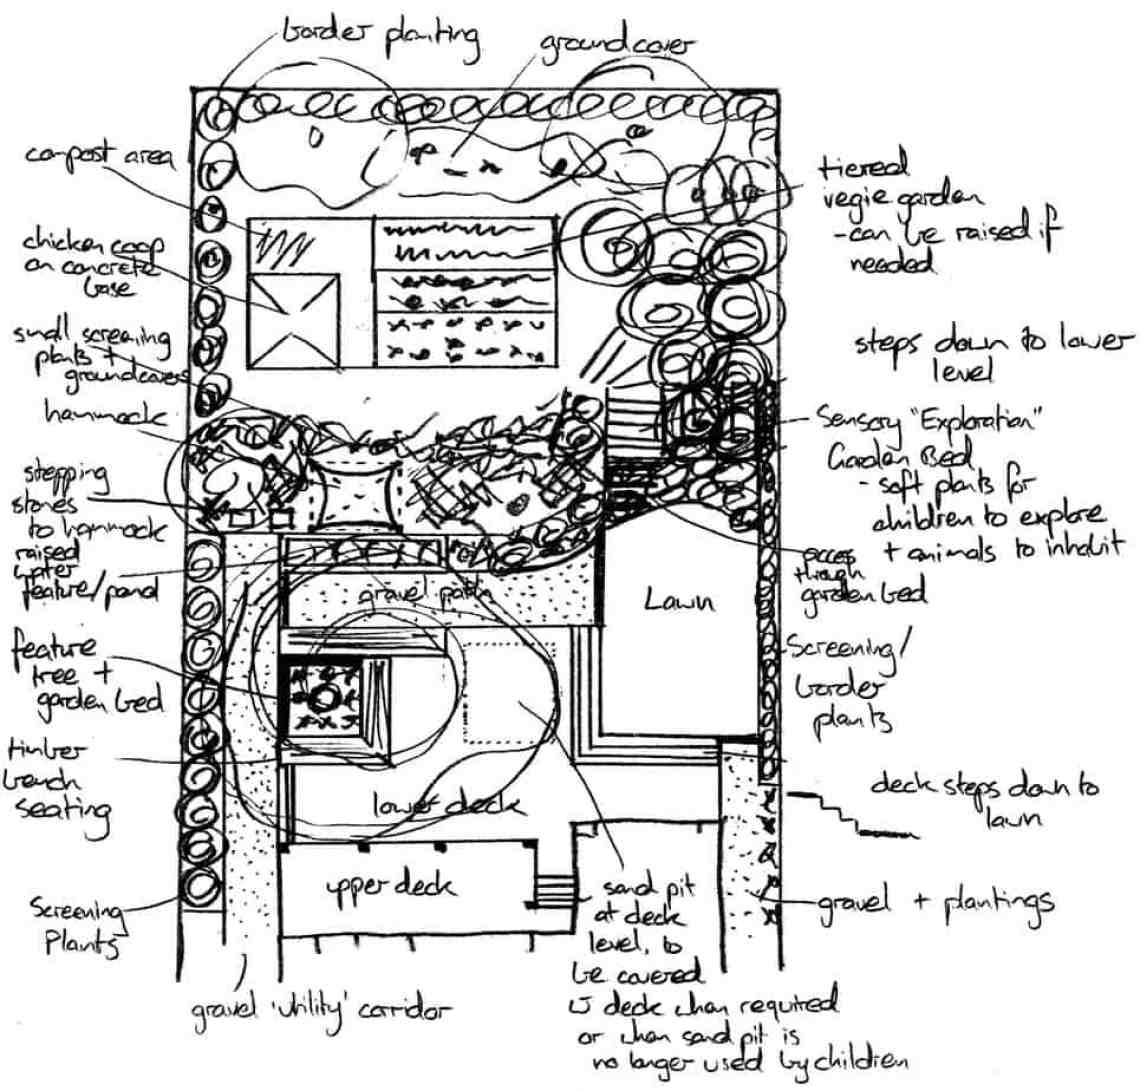 Refine Sketches - The Garden Design Process - How To Garden ... on drawing kitchen, drawing furniture plans, drawing addition plans, drawing tree house plans, drawing patio plans, driveway drawing plans, drawing easel plans, drawing bbq plans, drawing electrical plans, drawing small house plans, basement drawing plans, drawing construction plans, drawing desk plans, drawing balcony plans, civil engineering drawing plans, drawing deck plans, drawing city plans, drawing restaurant plans, drawing house floor plans, drawing horse plans,